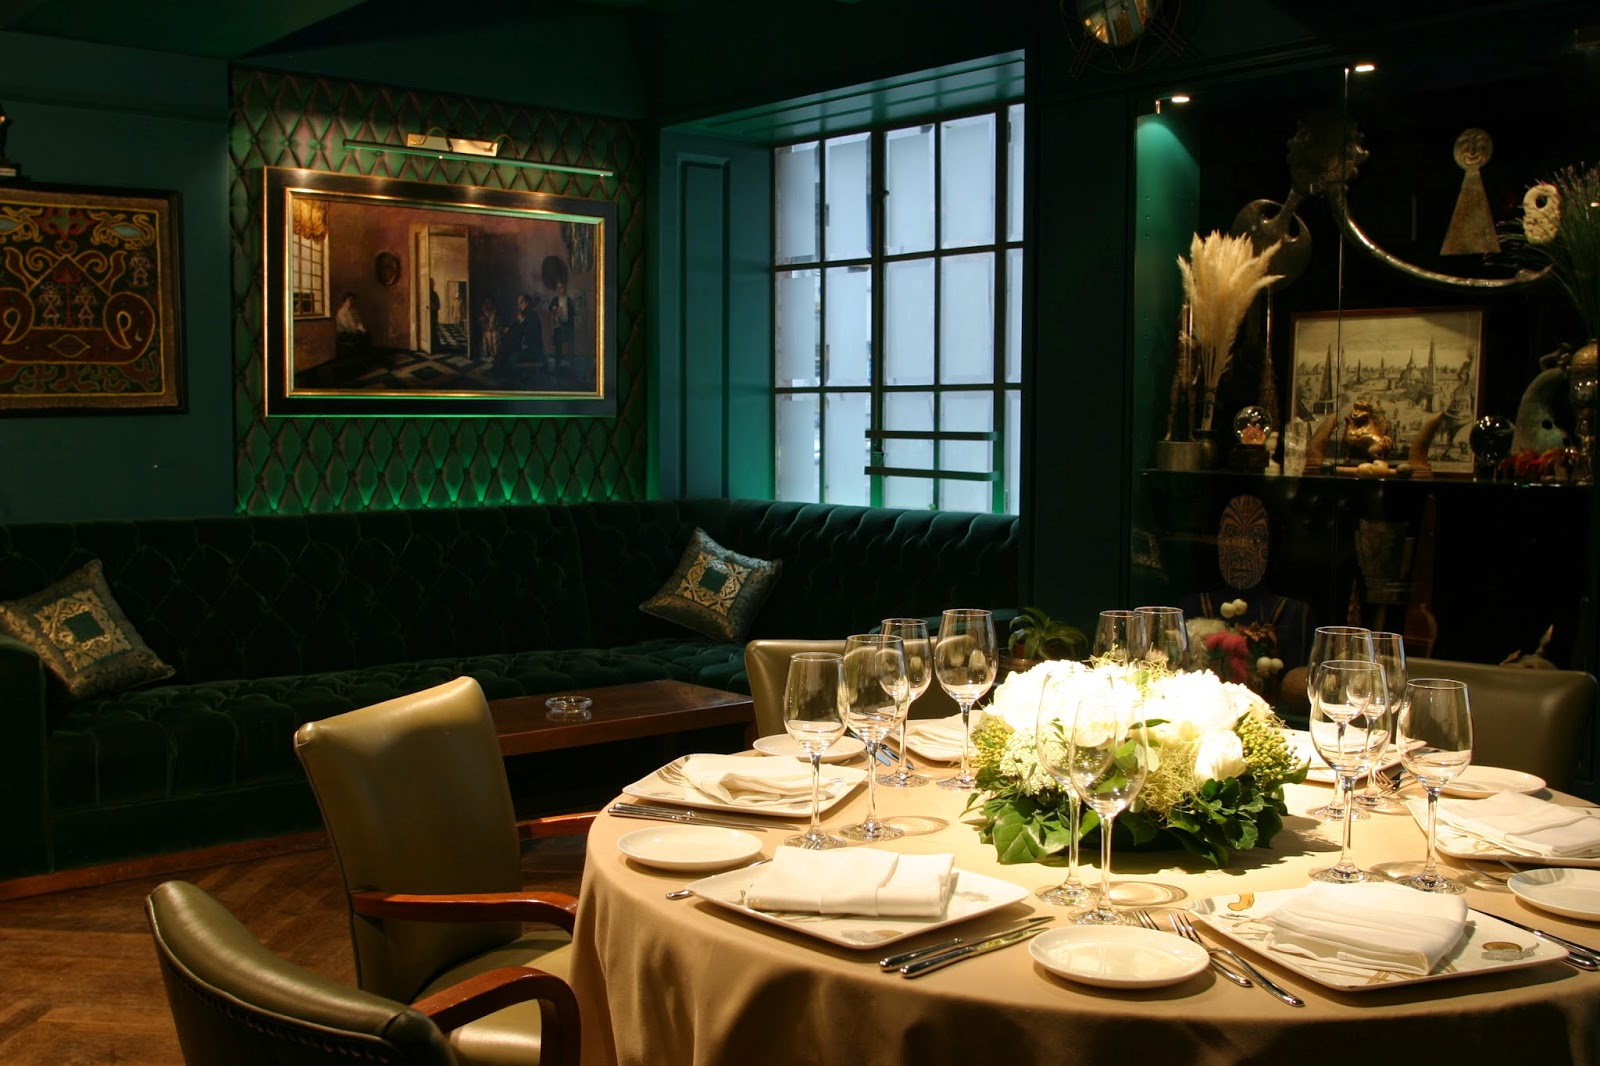 The 5 Most Beautiful Private Clubs Of Hong Kong Home Decor BlogCharming The Dining Room Hong Kong Gallery   3D house designs  . Most Beautiful Dining Room Pictures. Home Design Ideas